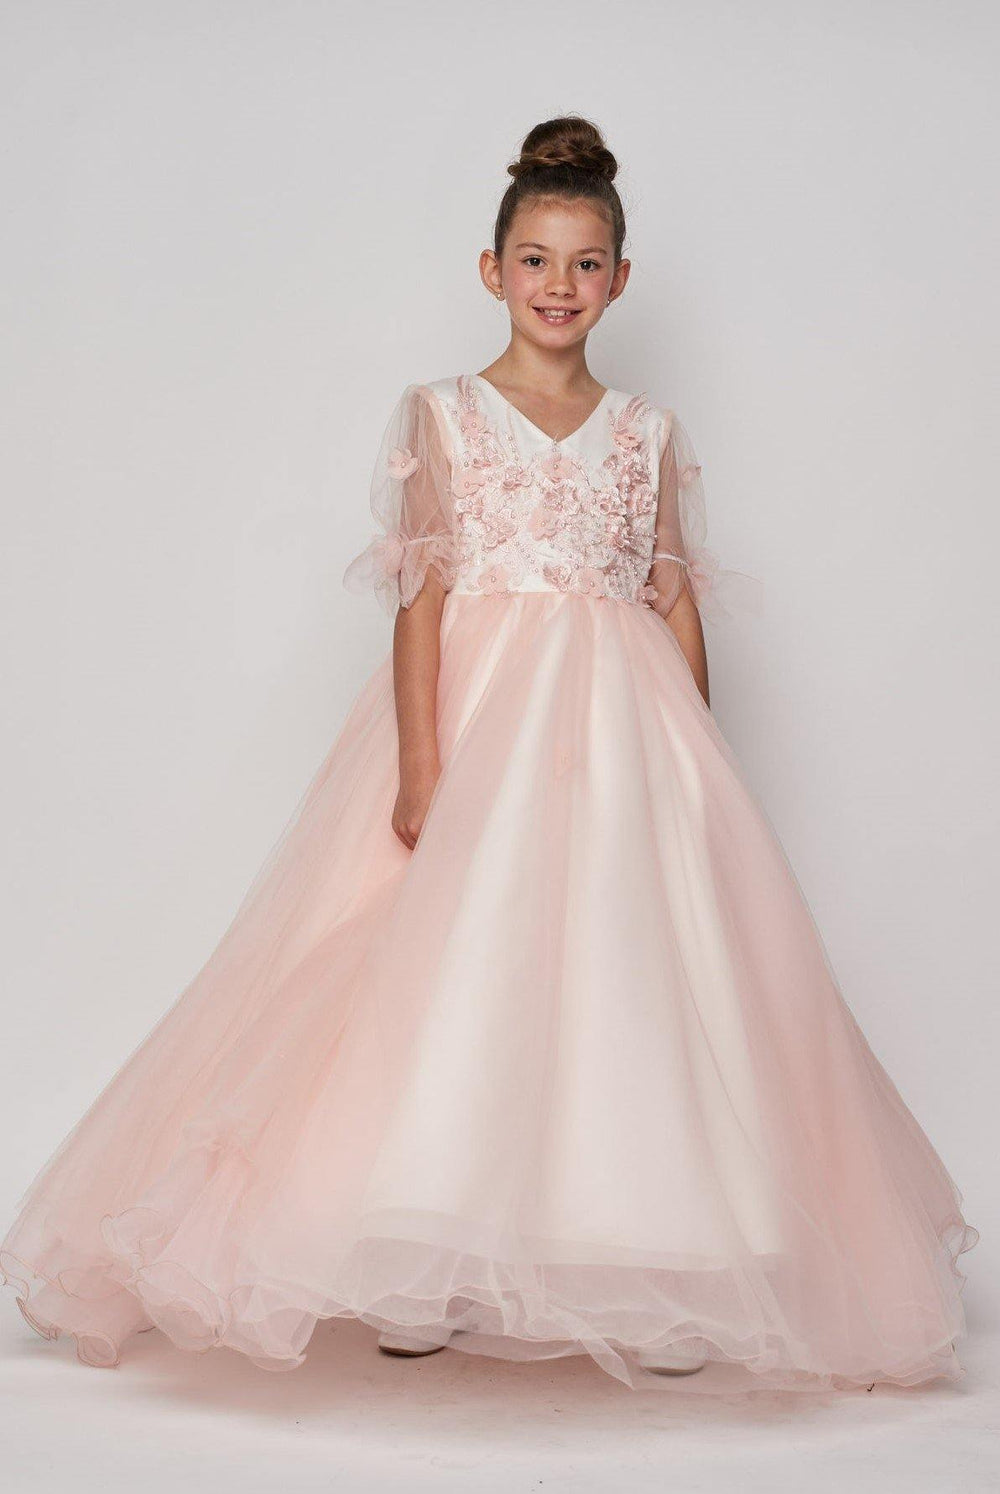 Short Sleeved Beaded Organza Gown Flower Girl - The Dress Outlet Pink